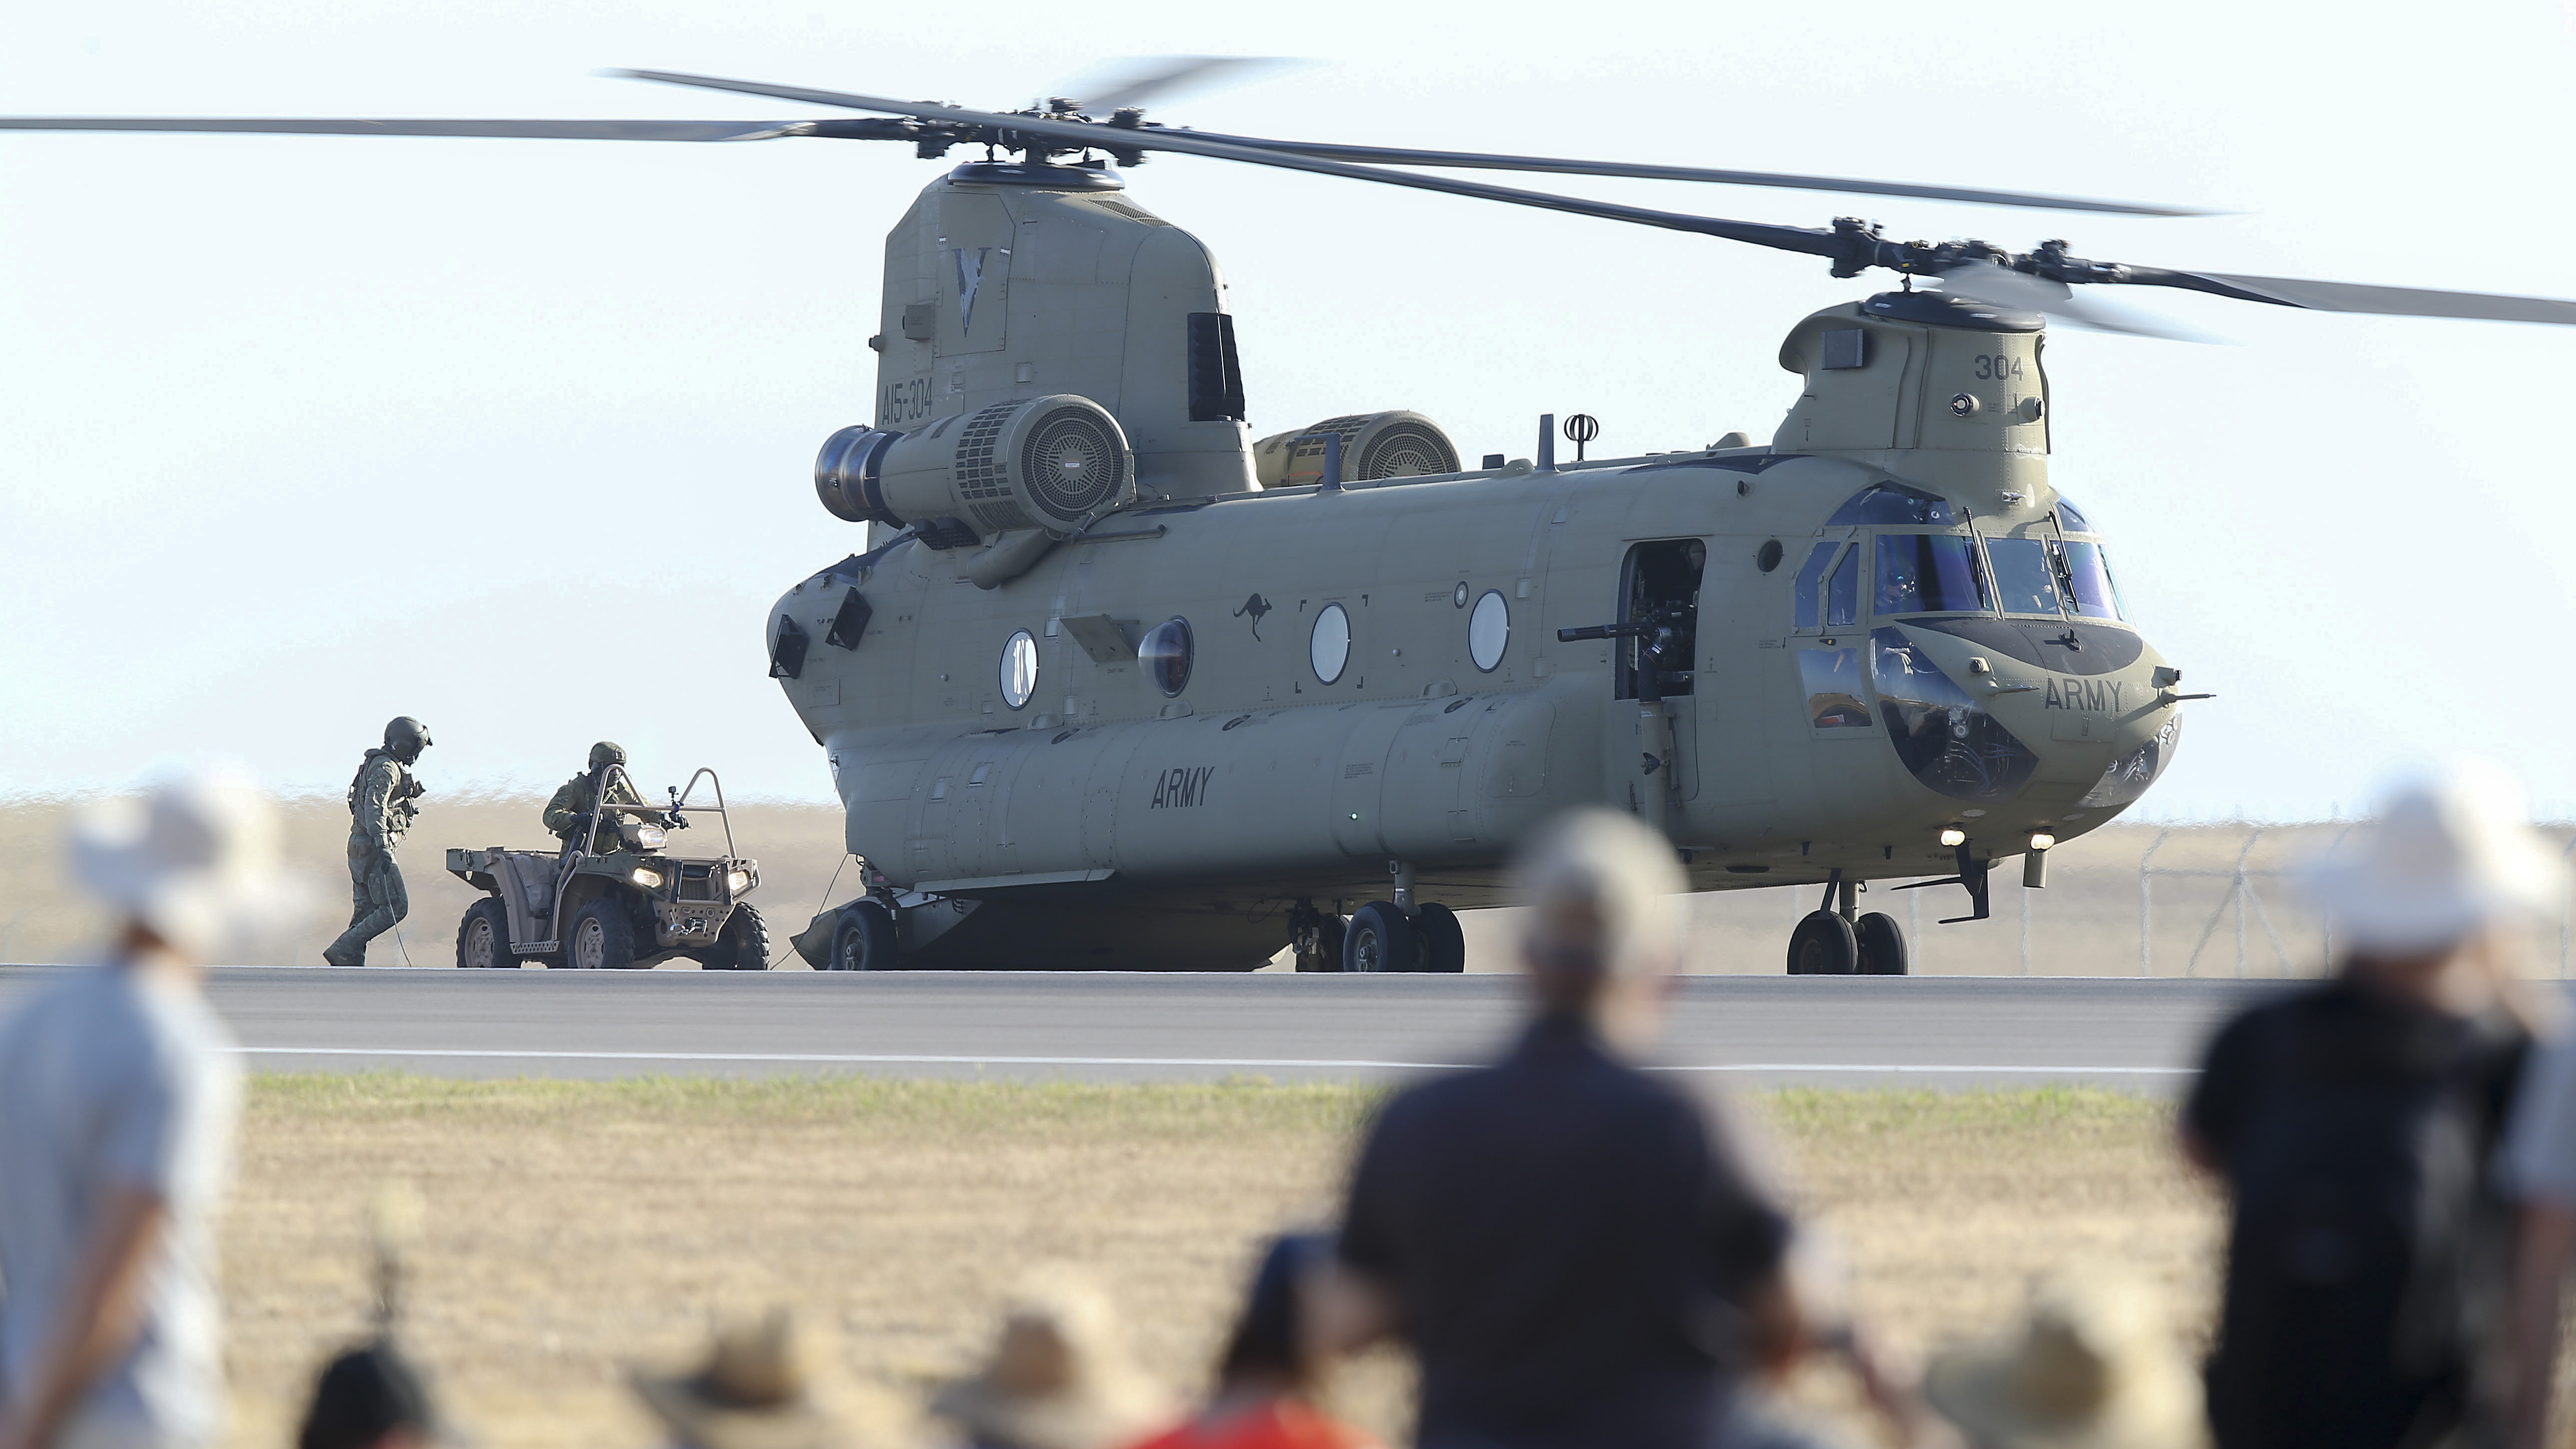 Soldiers drive an ATV into a Chinook CH-47 at Avalon Airport on March 01, 2019 in Melbourne, Australia during the 2019 Australian International Airshow. (Photo by Michael Dodge/Getty Images)